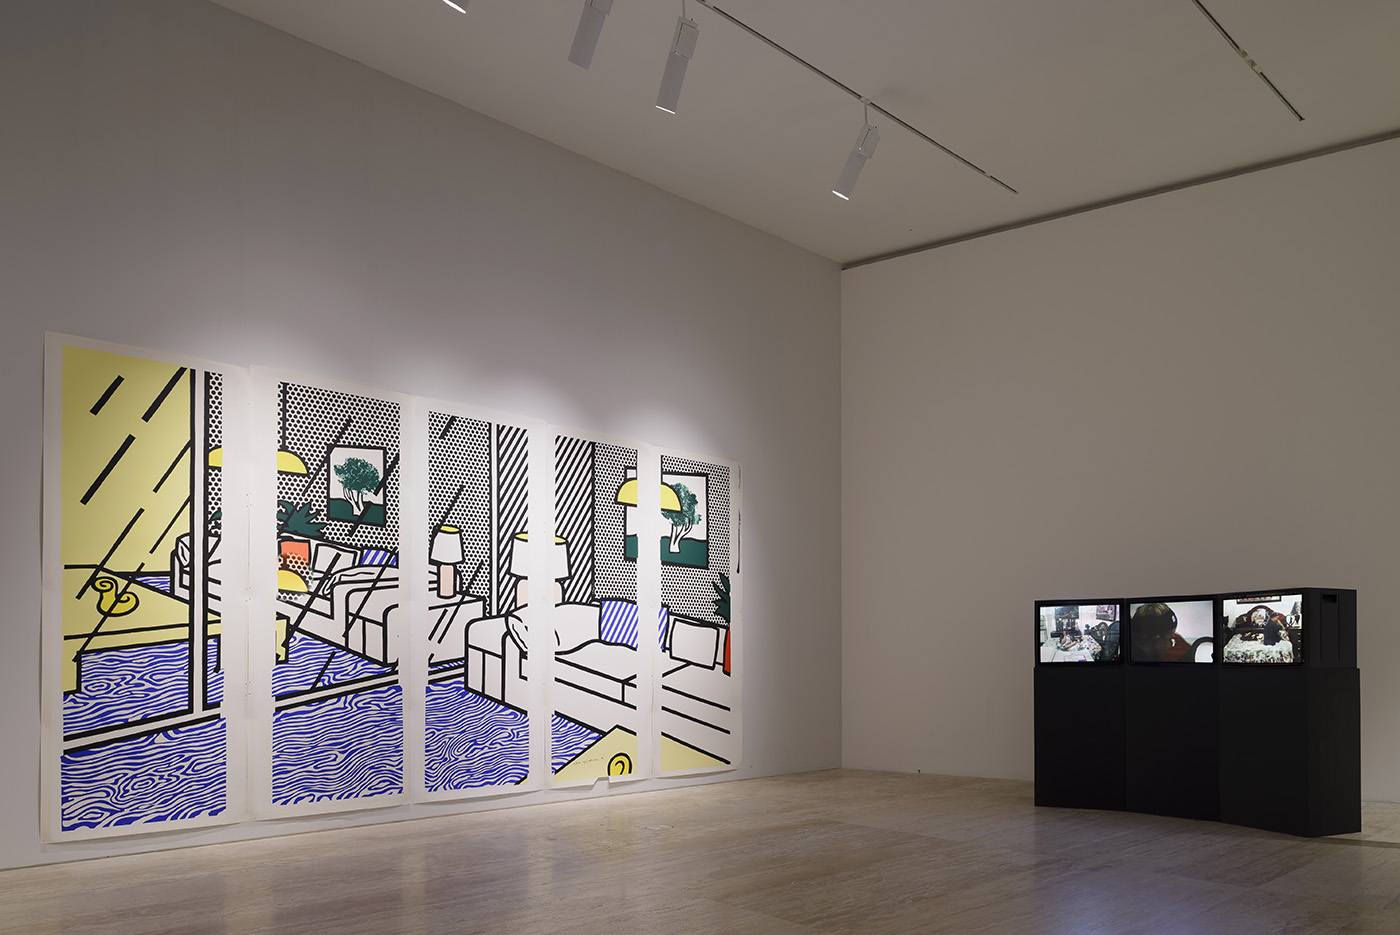 Installation view of 'The Natural Order of Things' at Museo Jumex